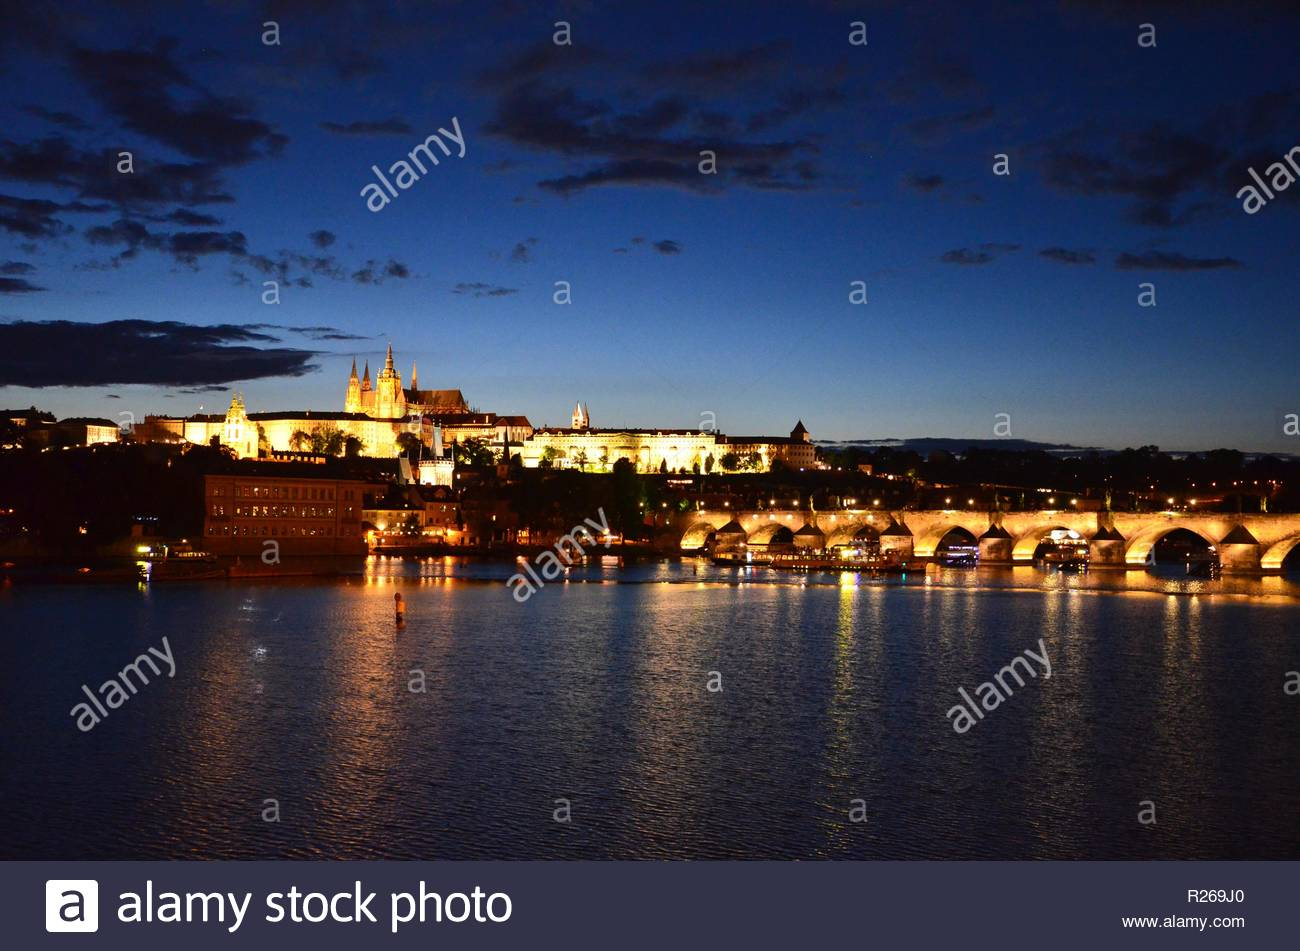 Illuminated Charles Bridge and Castle in Prague at night, reflections in water of River Moldau - Stock Image